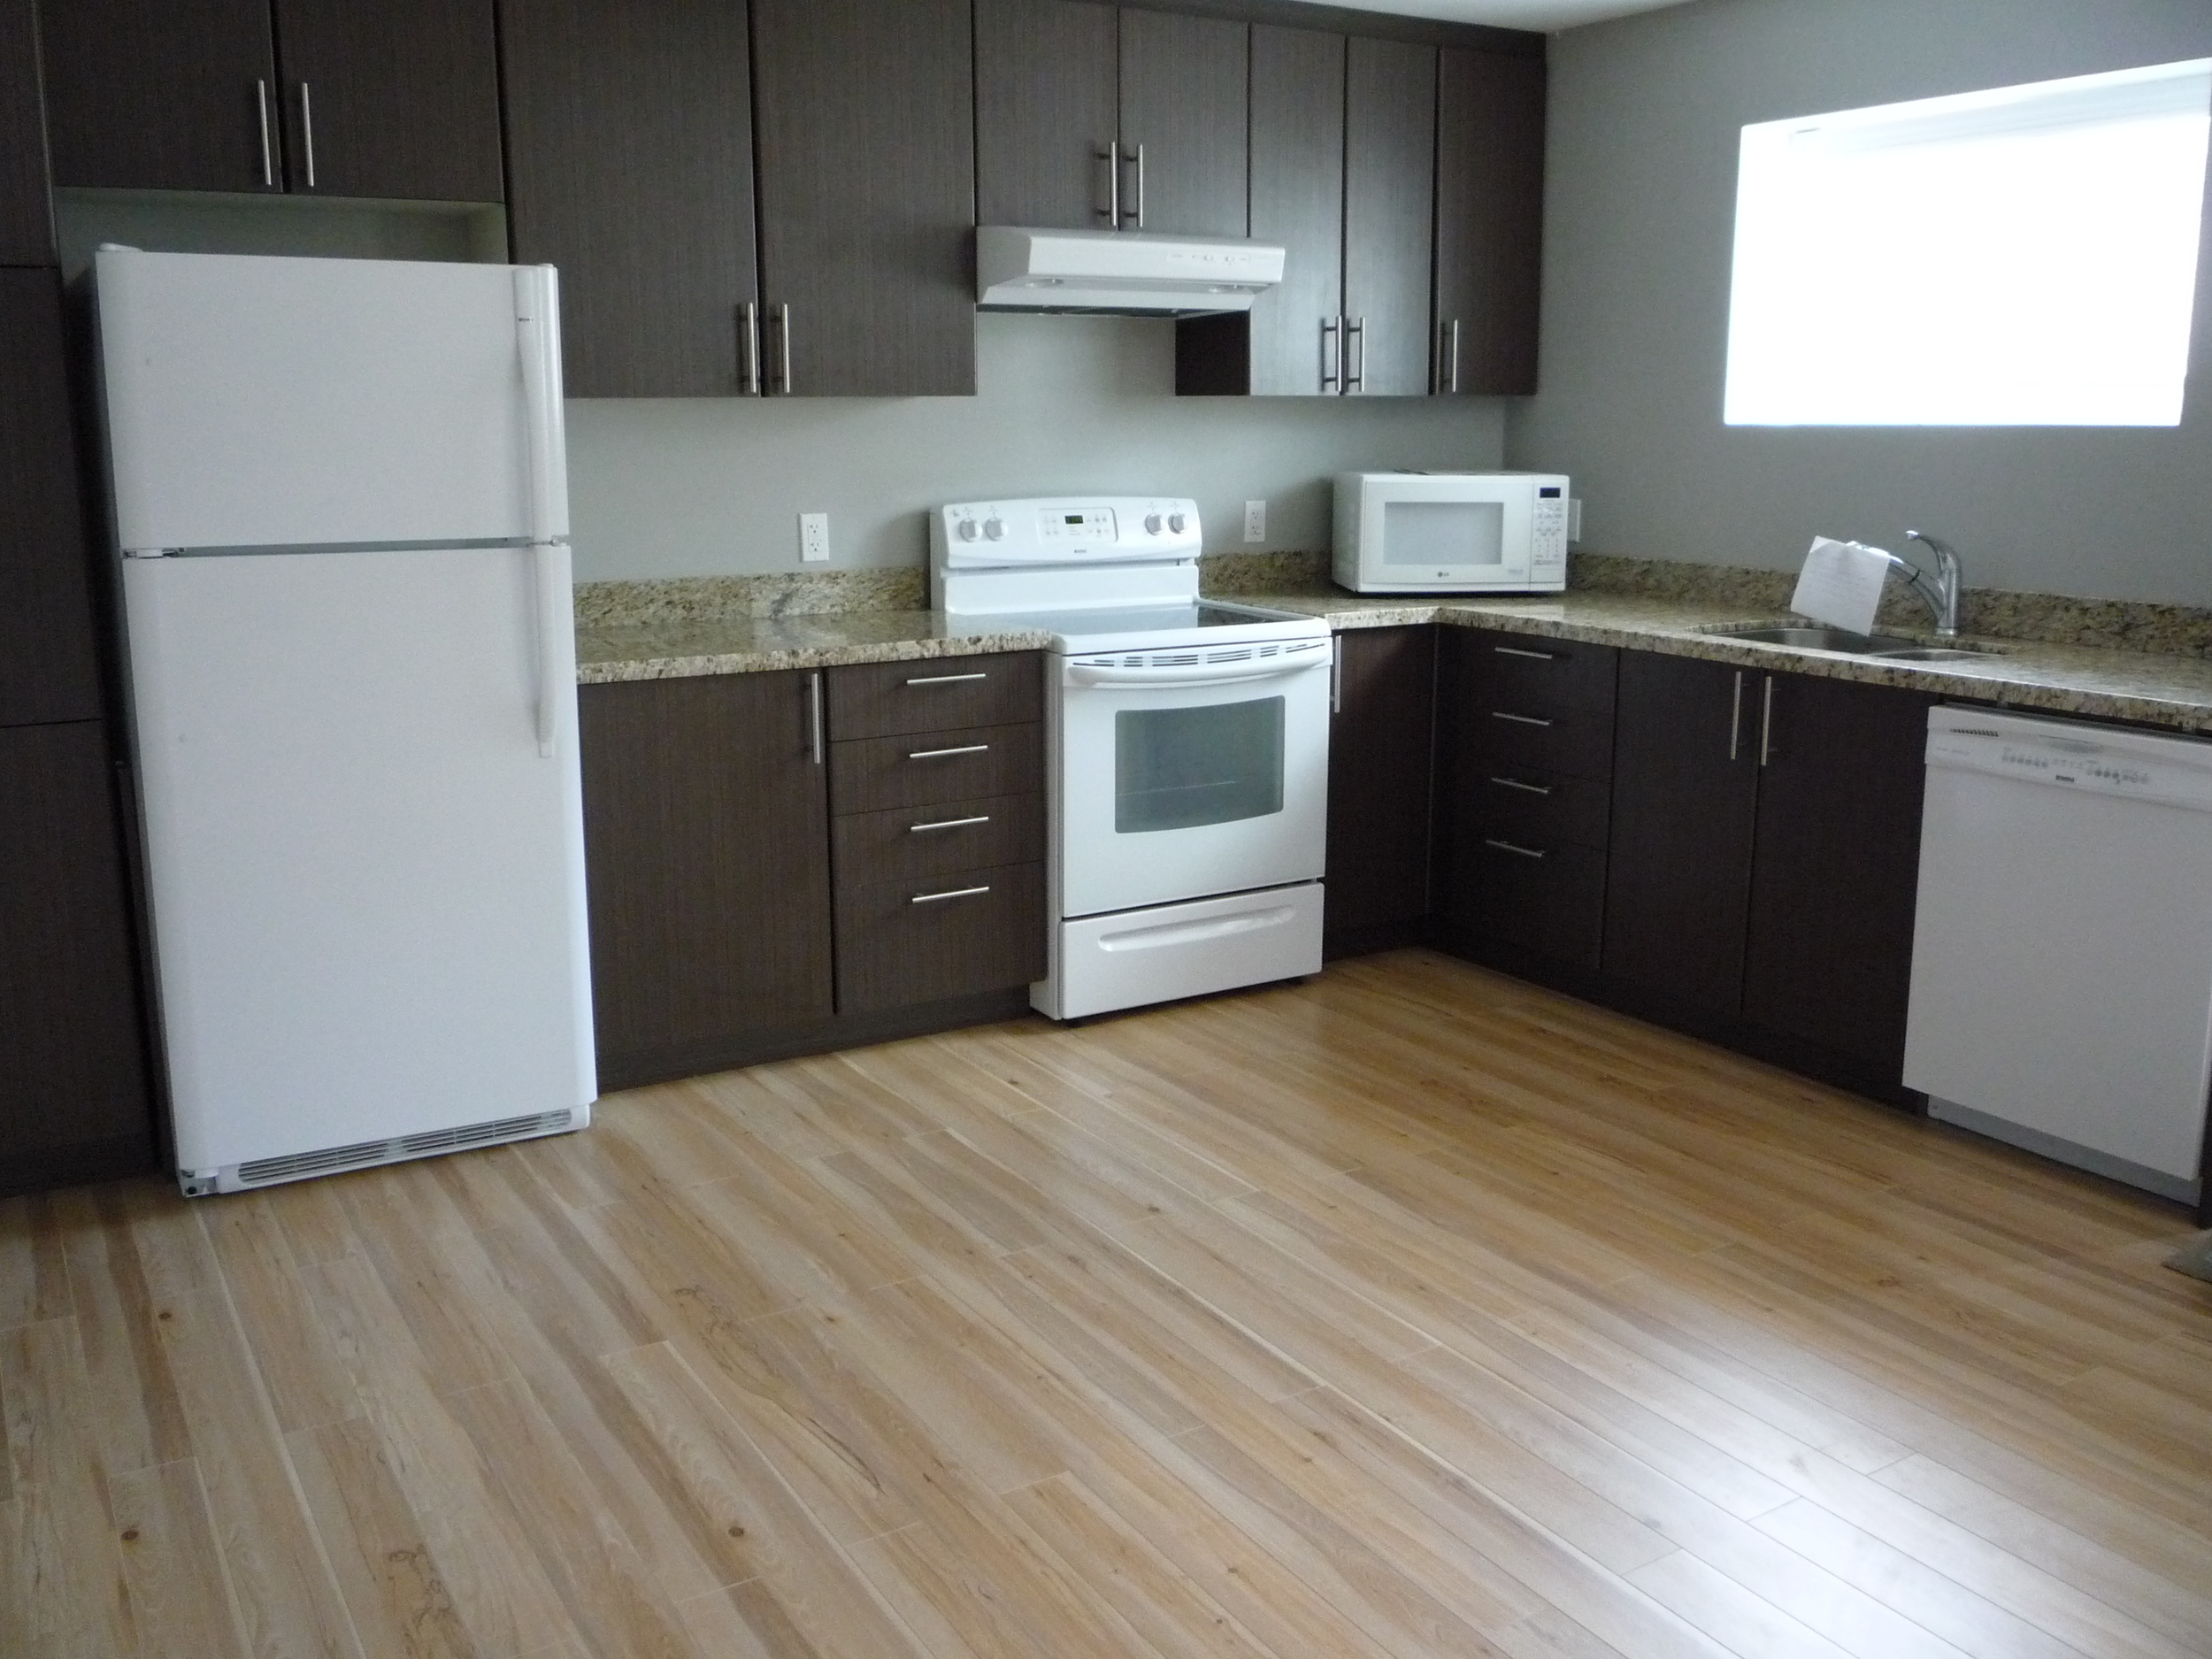 L-Shaped Kitchen in Legal Basement Suite with Window